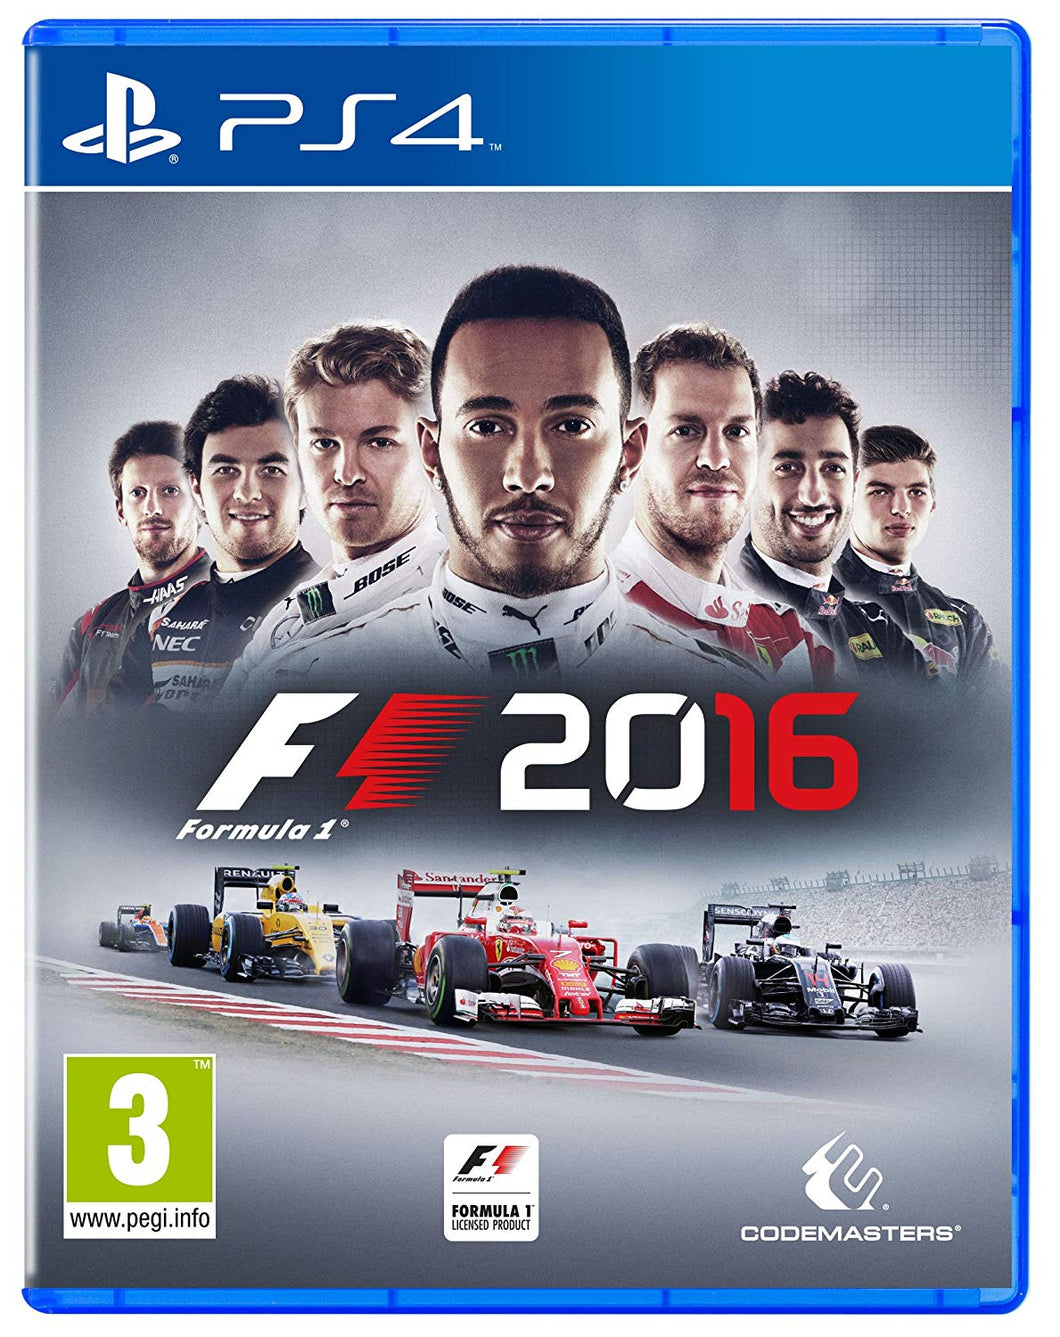 F1 2016 - EU PACKAGING